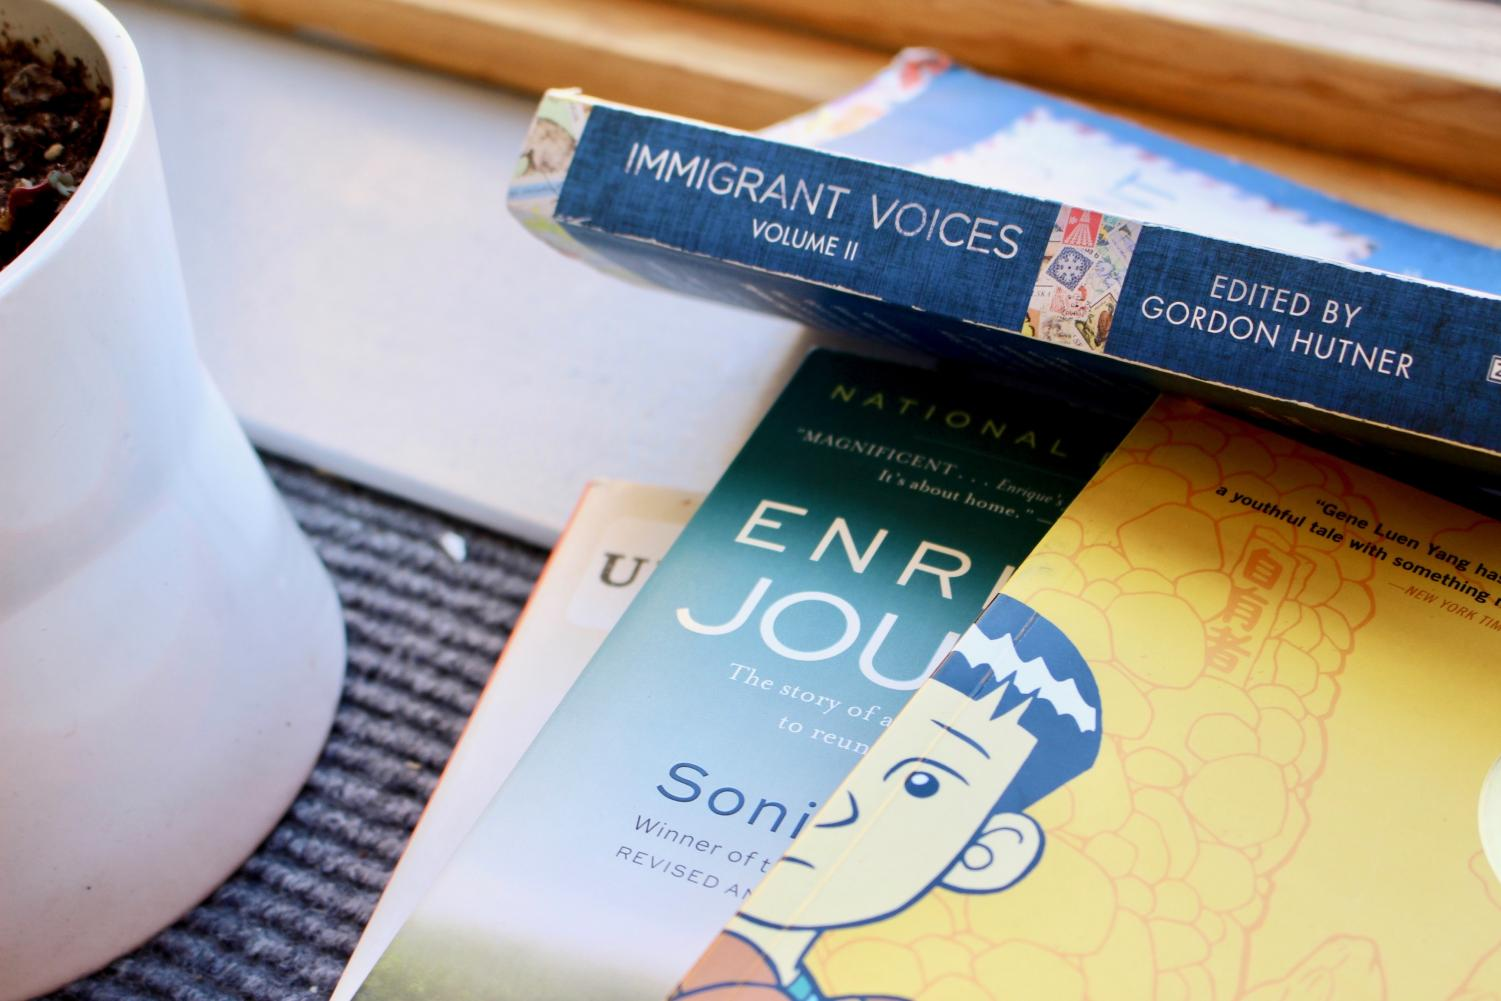 Immigrant Literature reads multiple books over the course of a semester to learn about the lives immigrants and the immigrant experience.